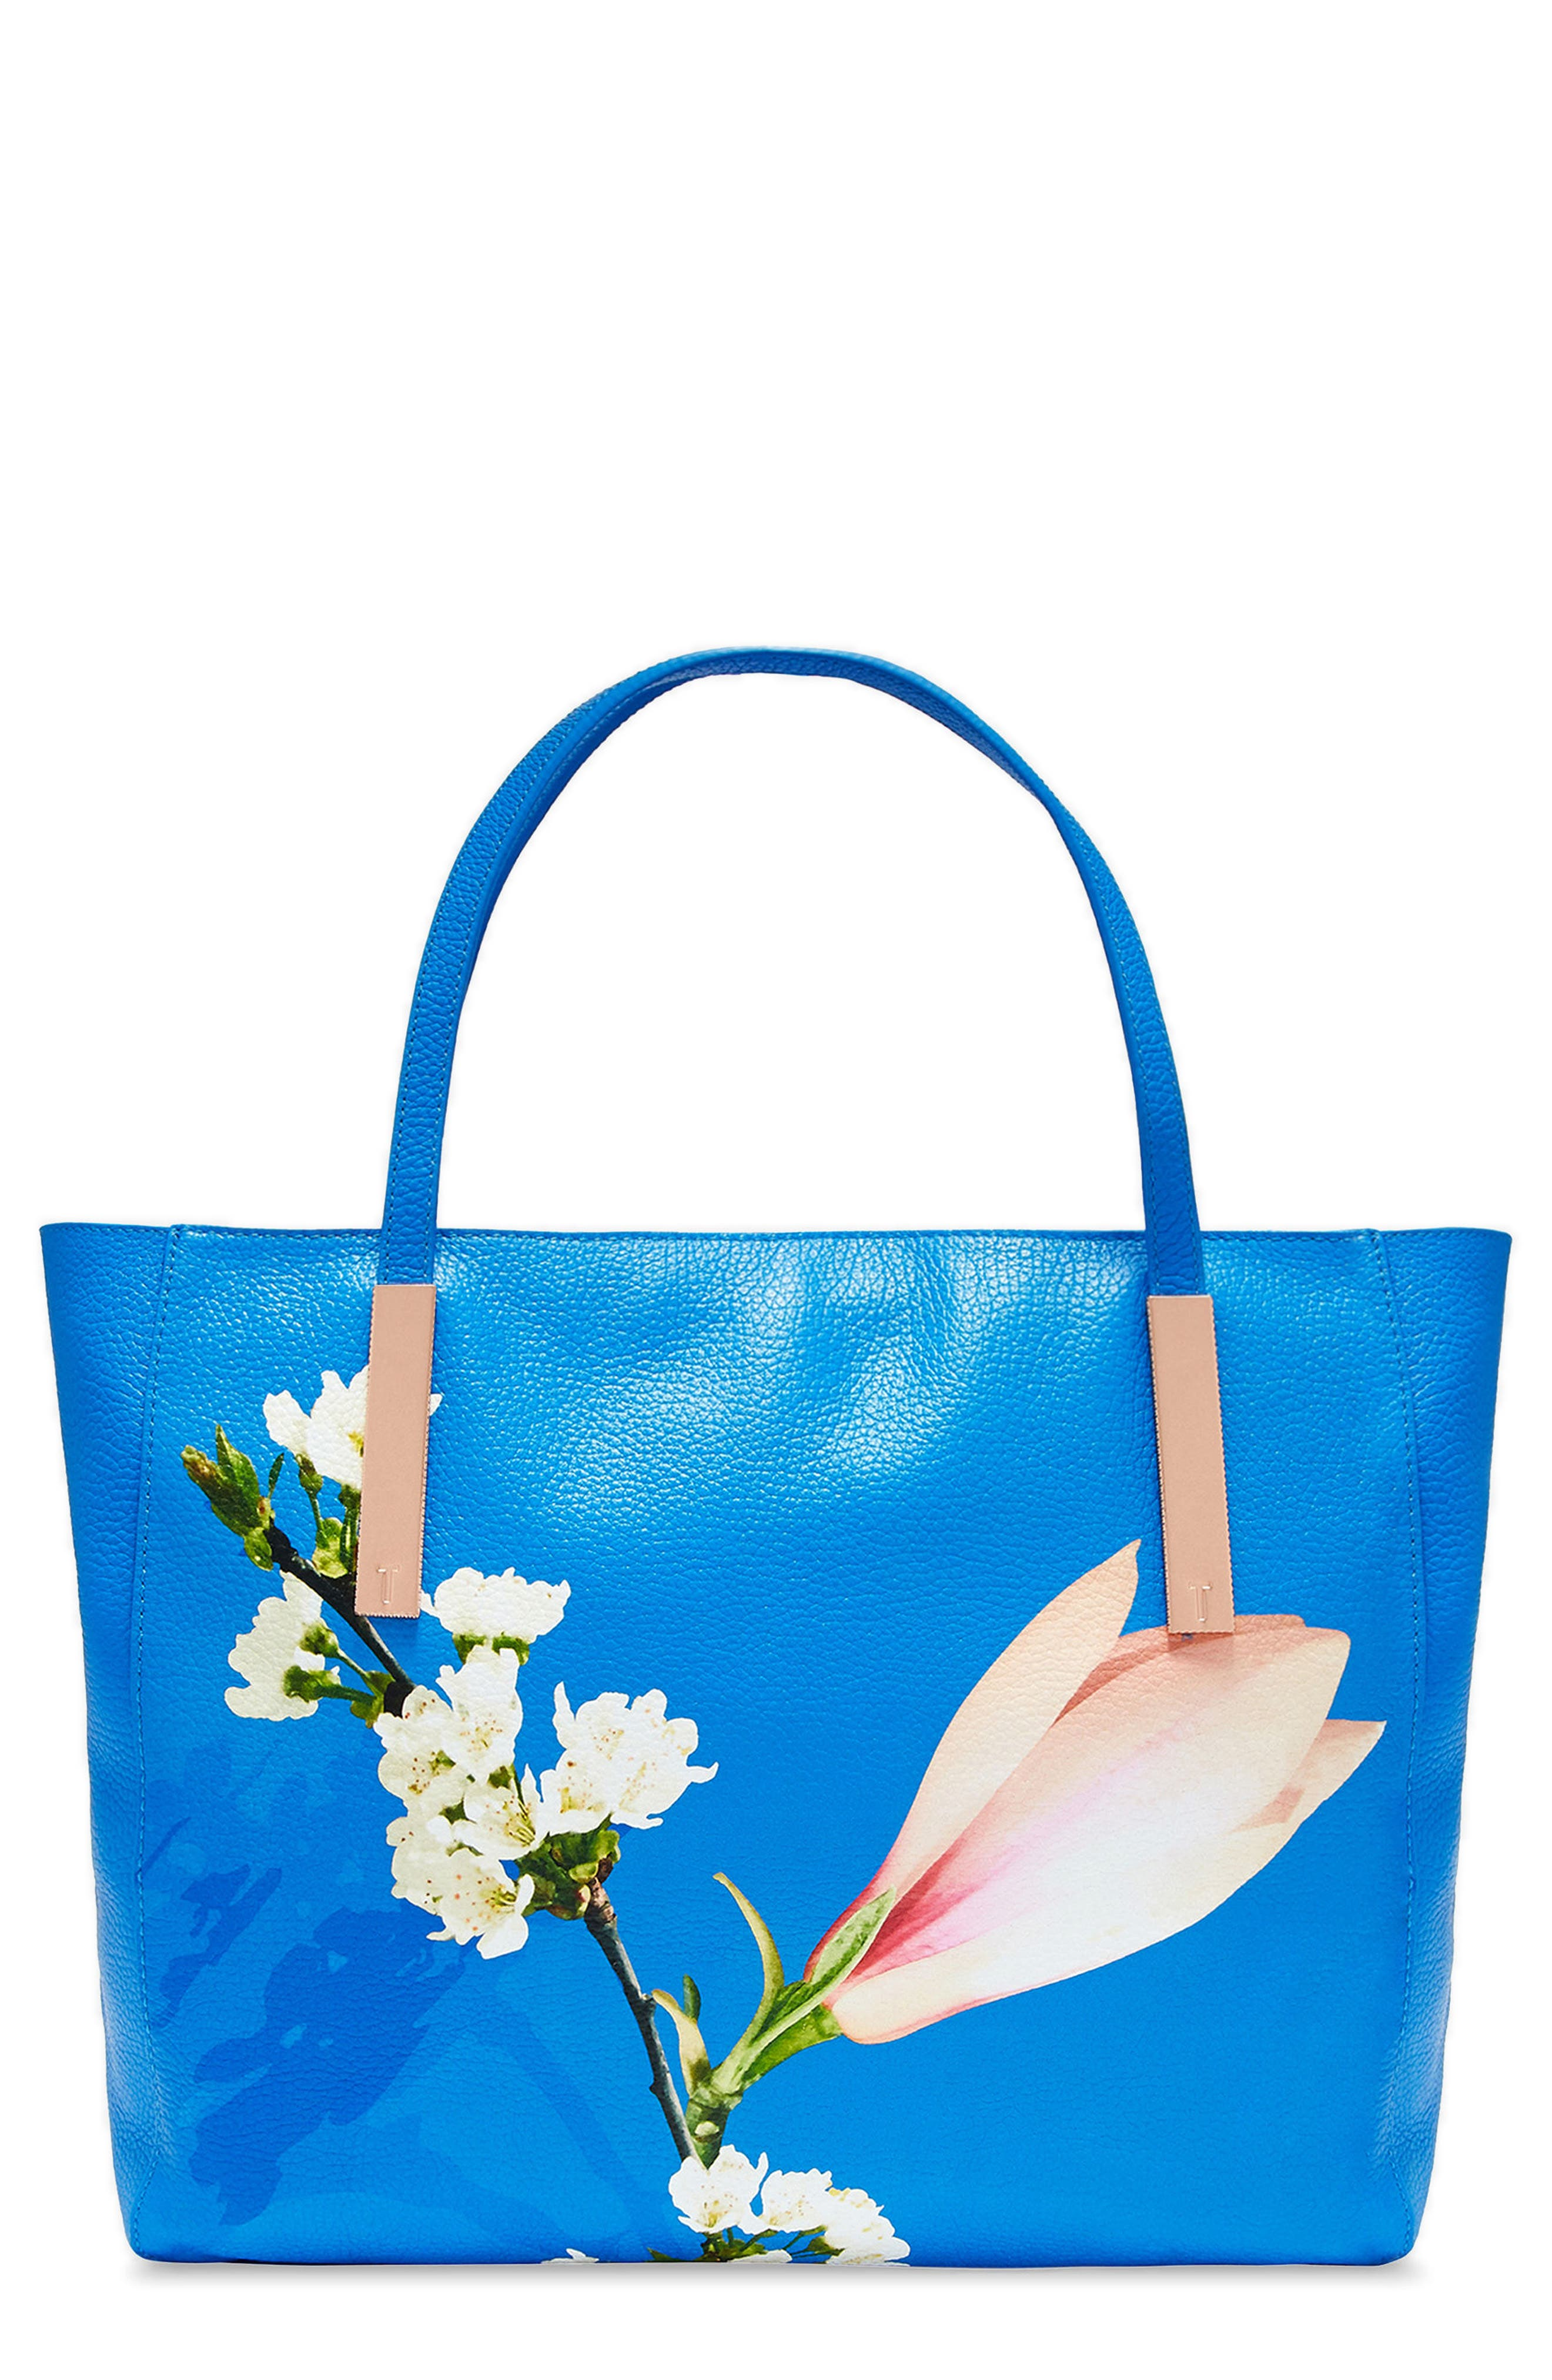 Haanaa Harmony Pebbled Leather Tote,                         Main,                         color, Bright Blue